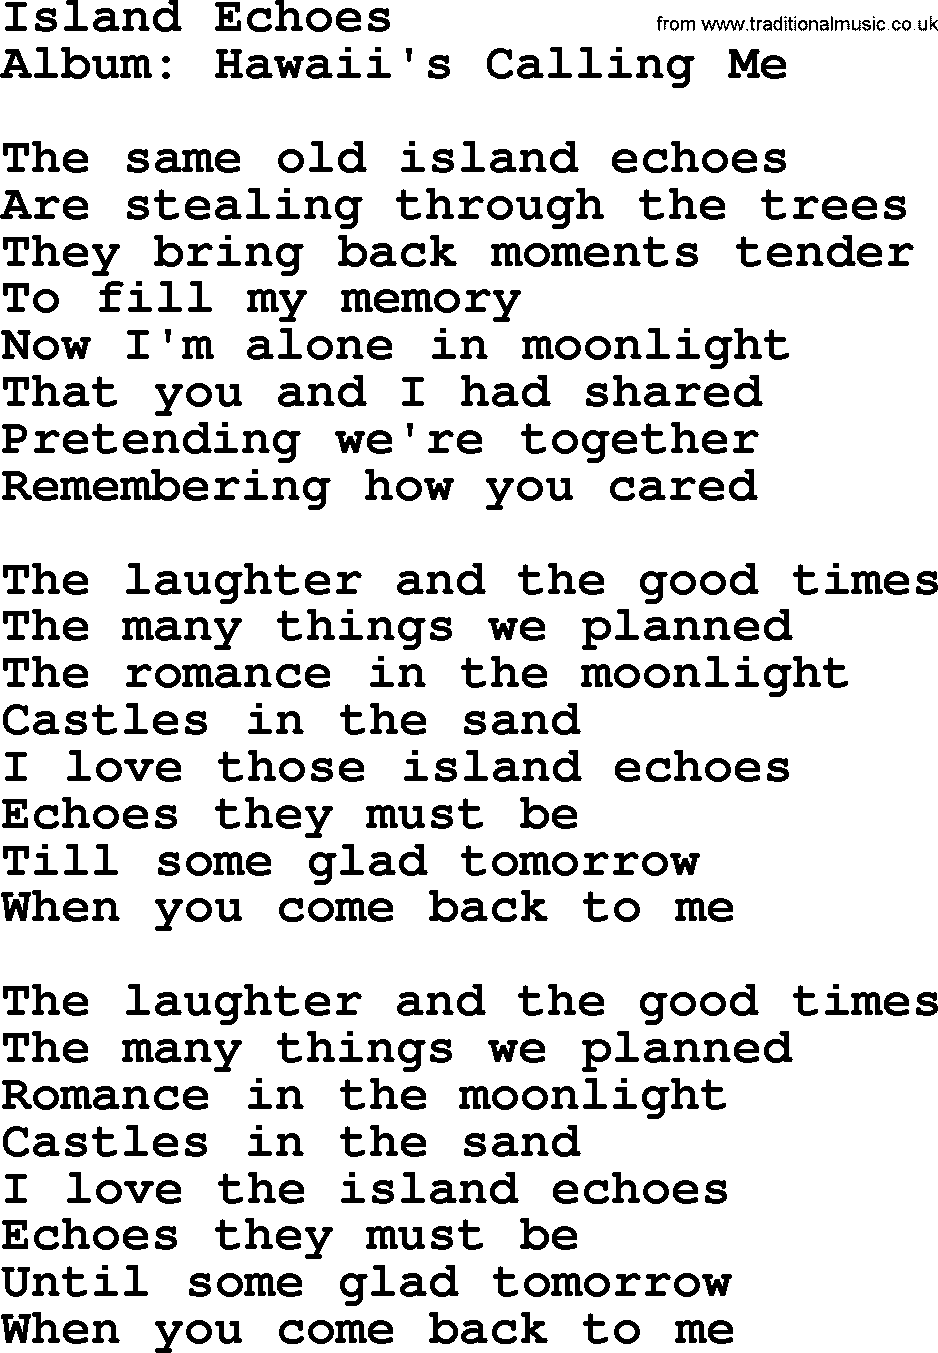 Island echoes by marty robbins lyrics marty robbins song island echoes lyrics hexwebz Images